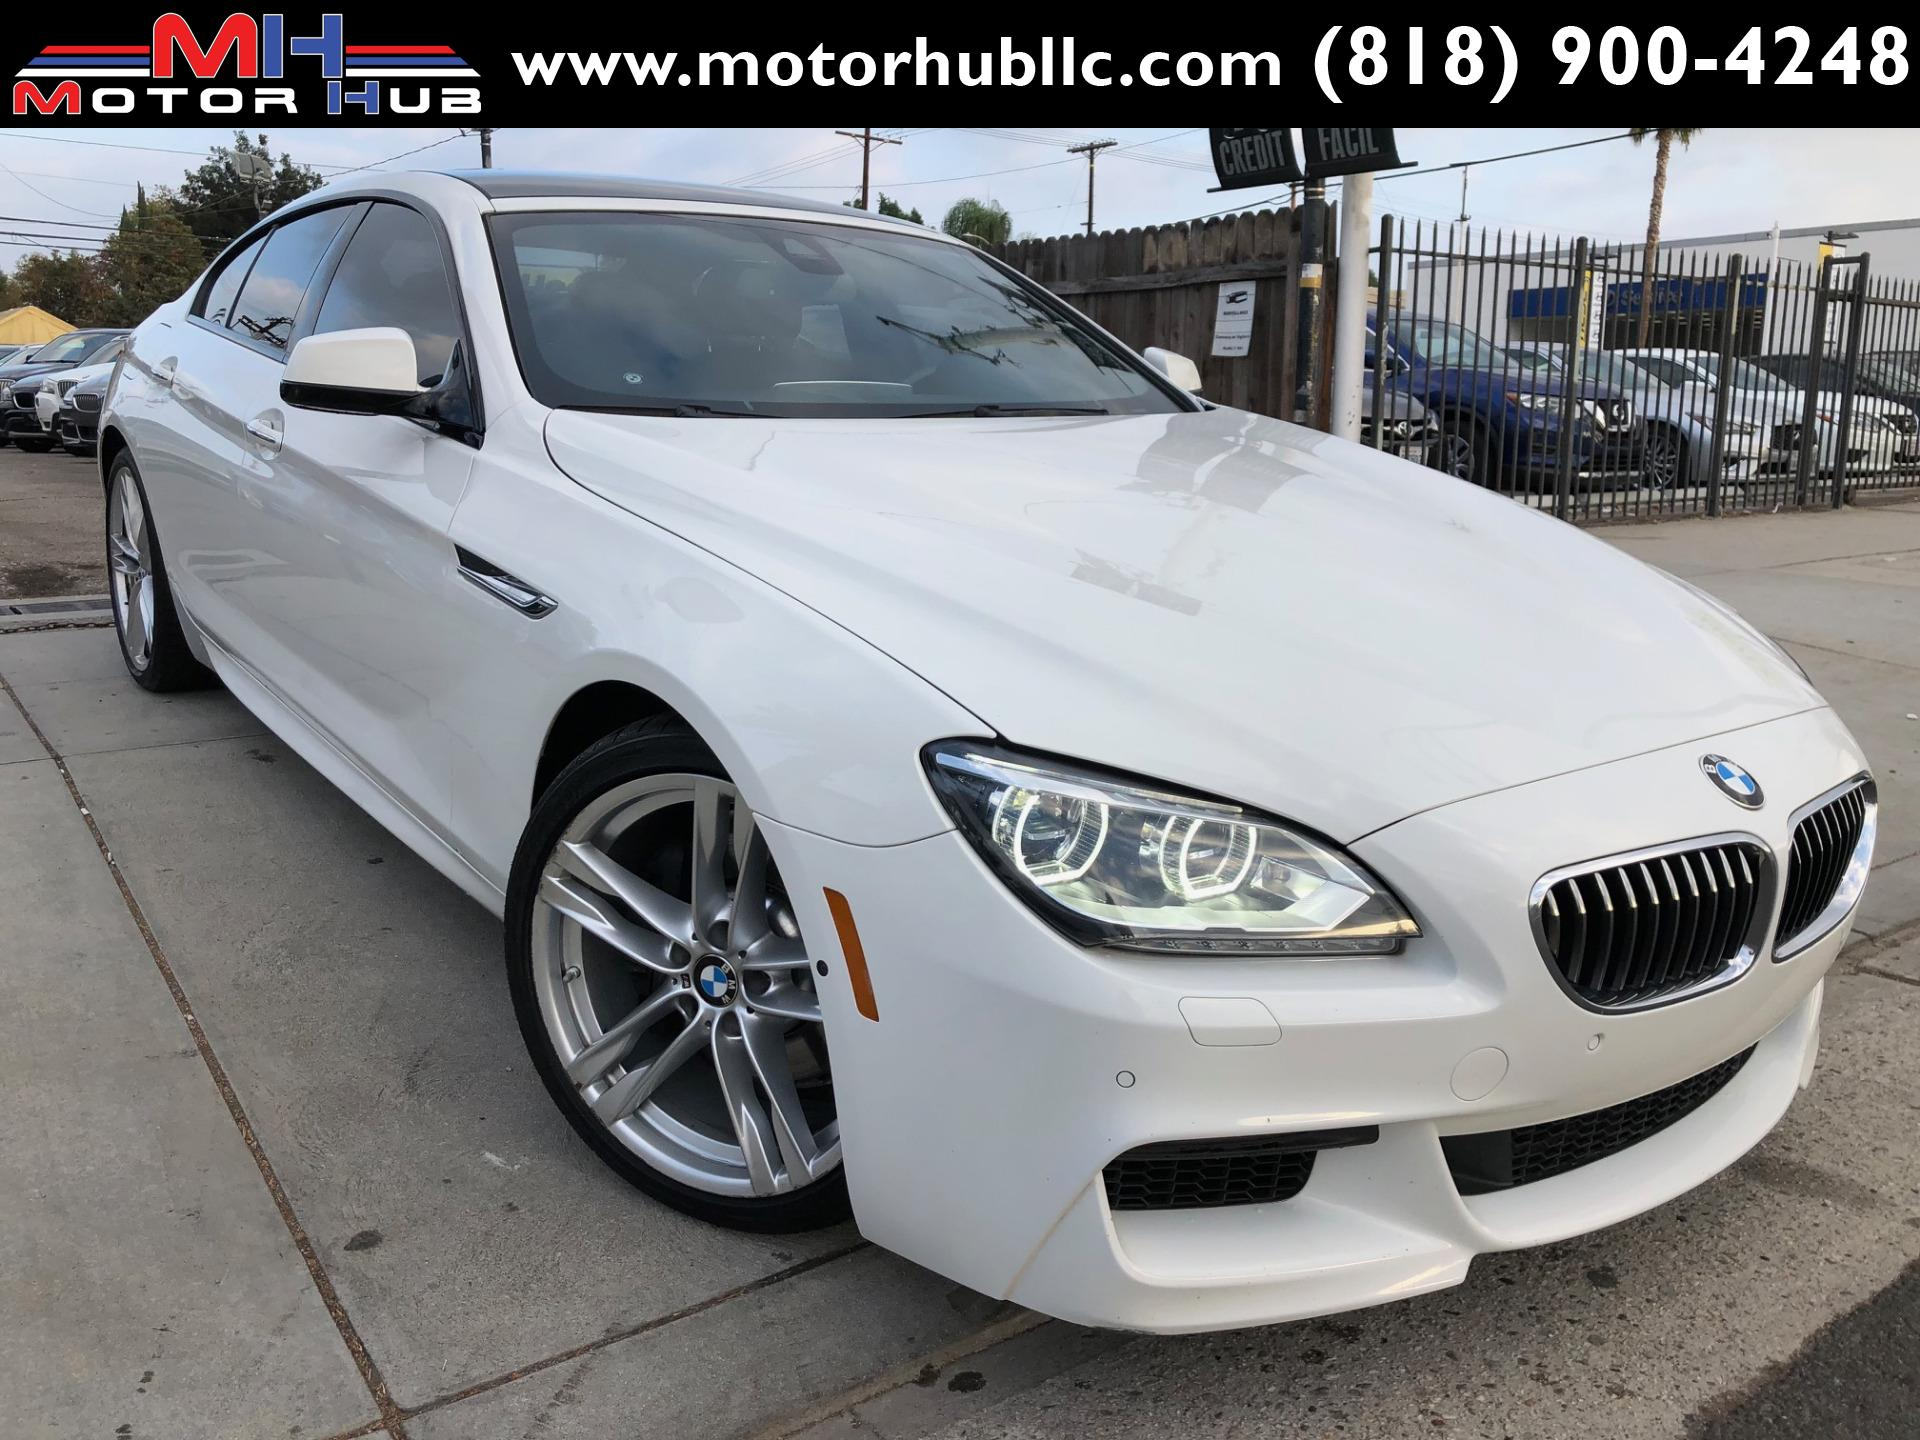 BMW Van Nuys >> 2015 BMW 6 Series 640 Gran Coupe Stock # B53762 for sale near Van Nuys, CA | CA BMW Dealer